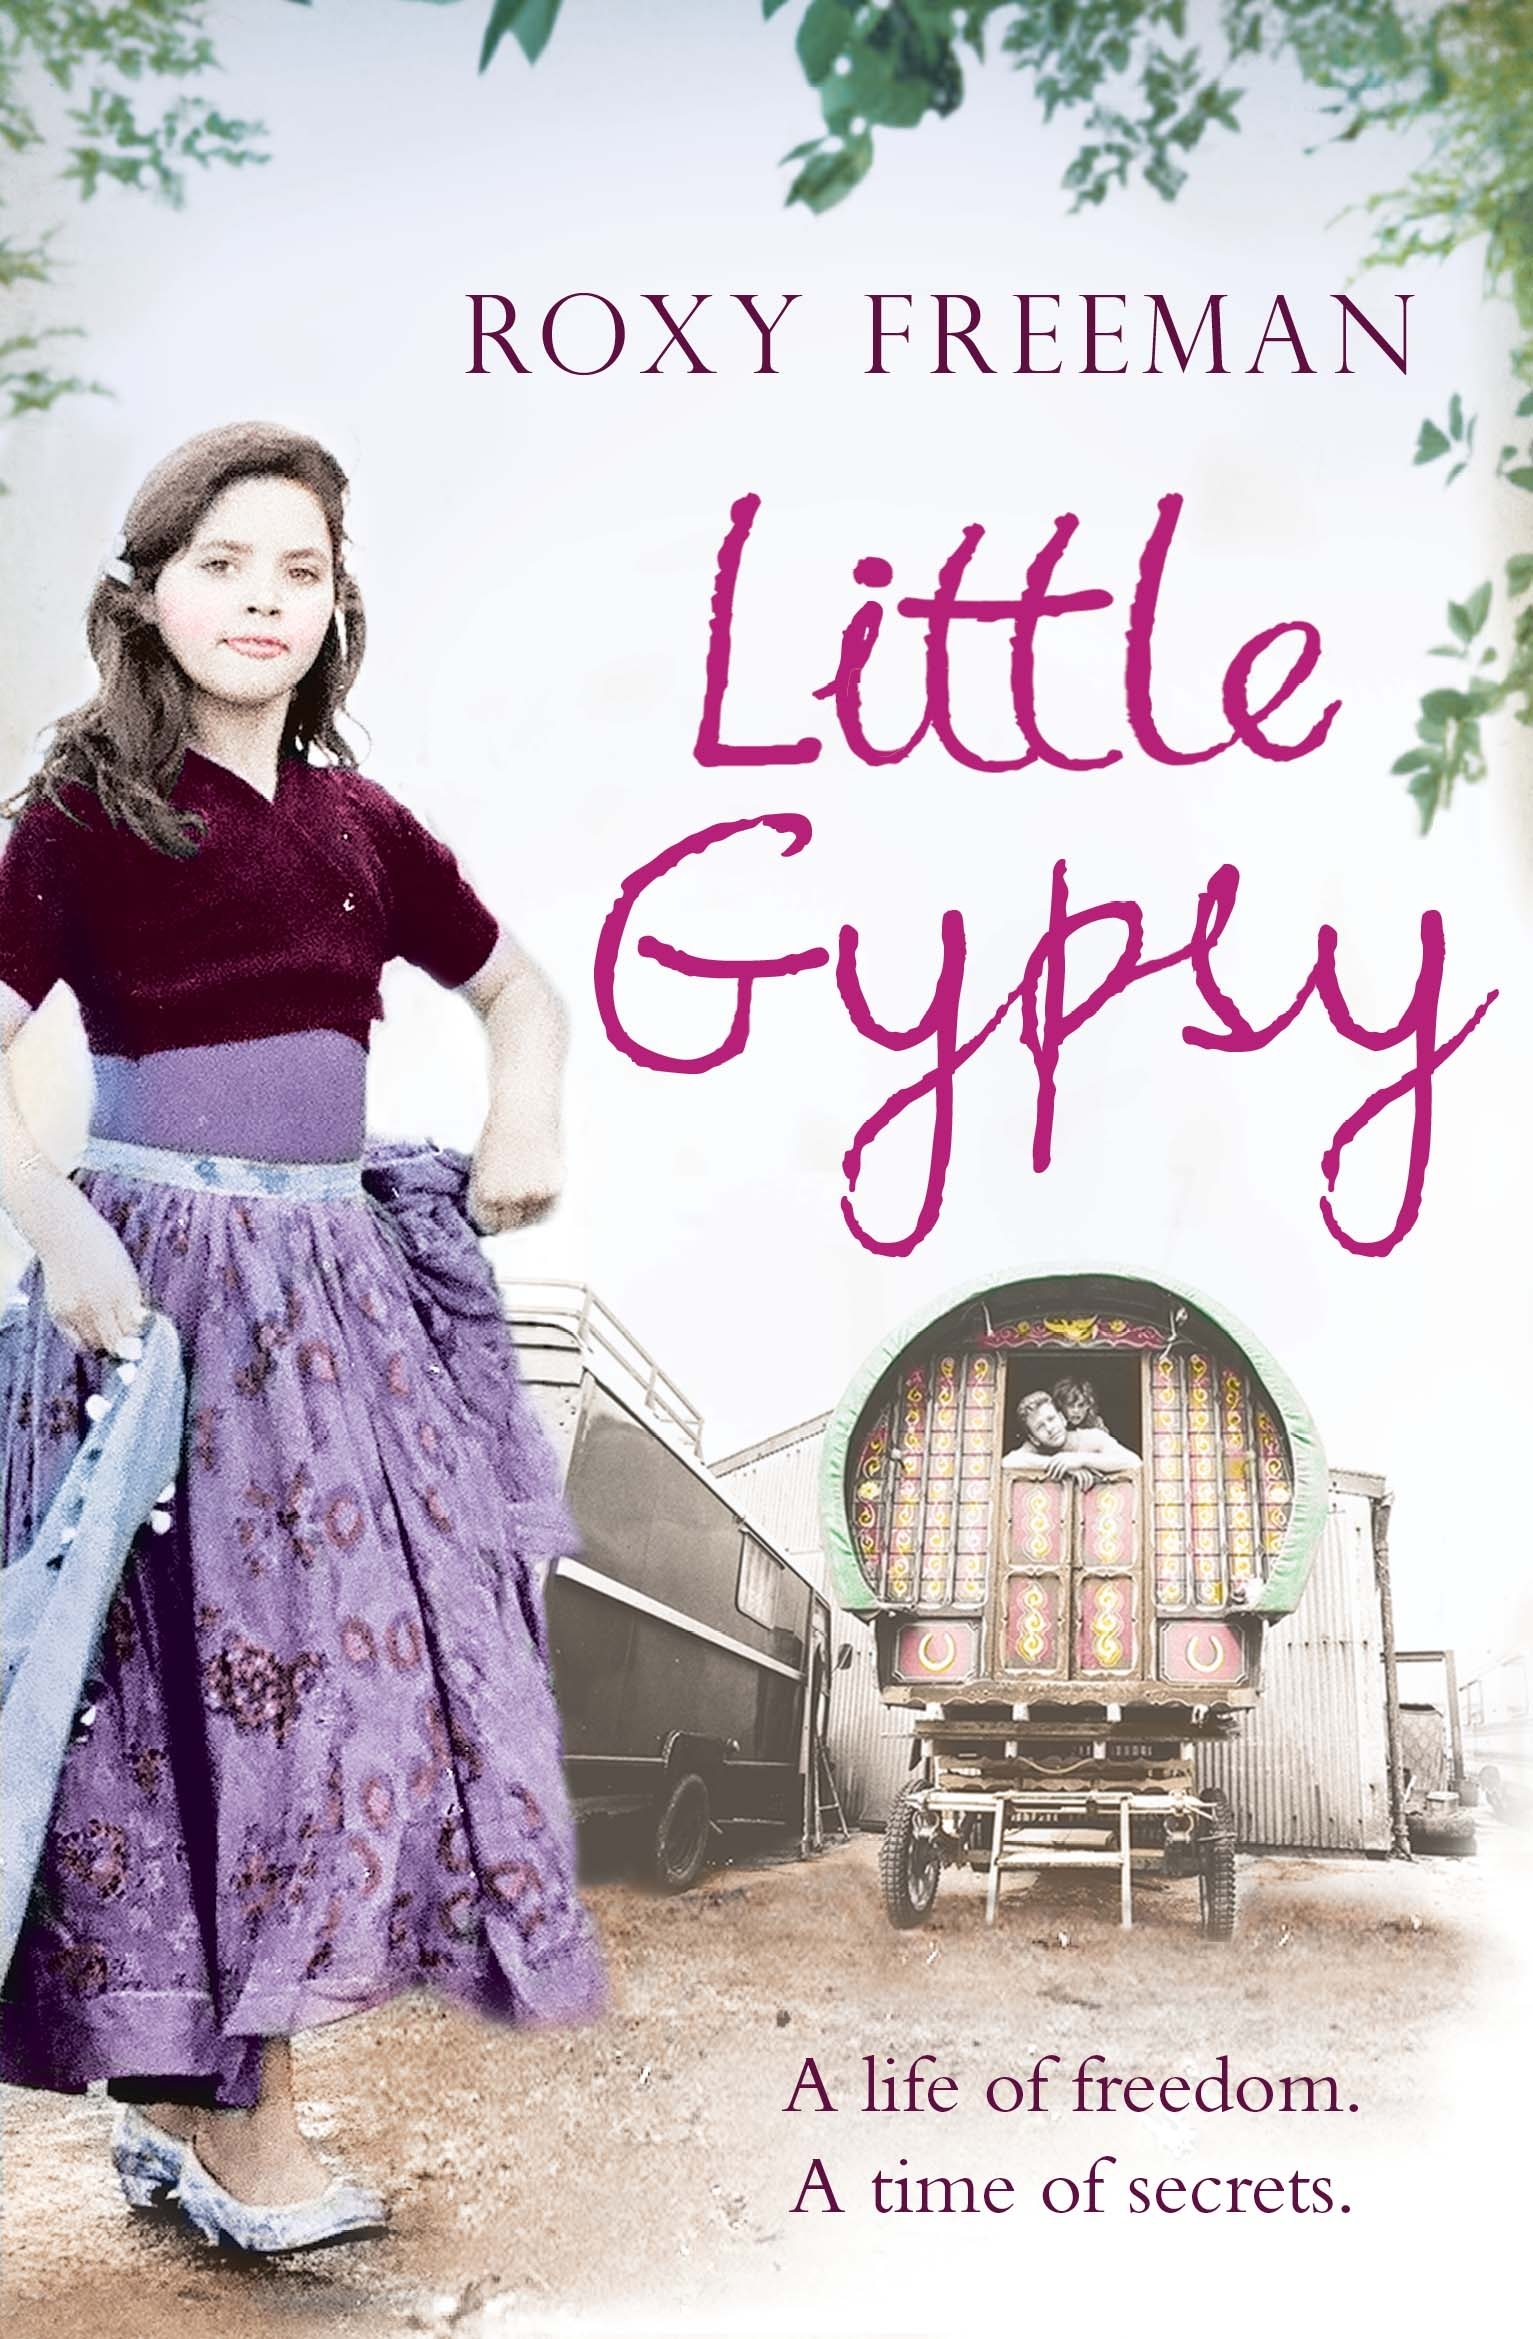 LITTLE GYPSY  Non-fiction, 288 pages  Simon & Schuster - August 2011   Born in 1979, Roxy Freeman grew up travelling around Ireland and England in a traditional horse-drawn wagon with her mother and father and six siblings. Her beautifully written story is a frank portrait of what life is really like for women and girls of traveller communities.